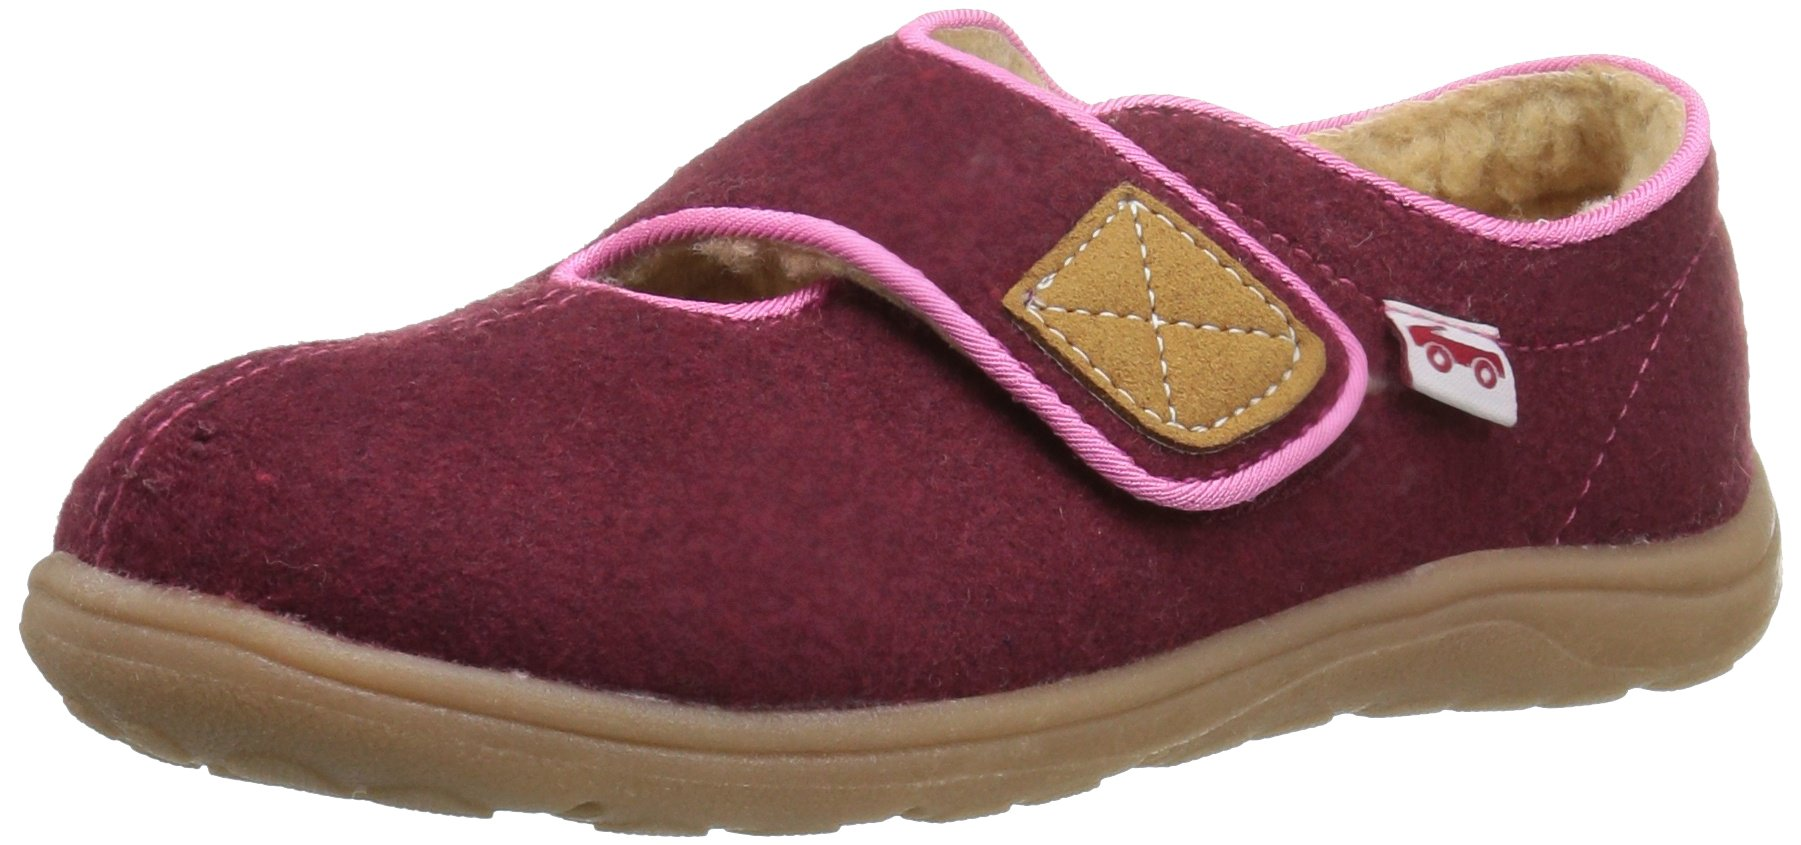 See Kai Run Girls' Cruz Shearling Slipper, Berry, 7 M US Toddler